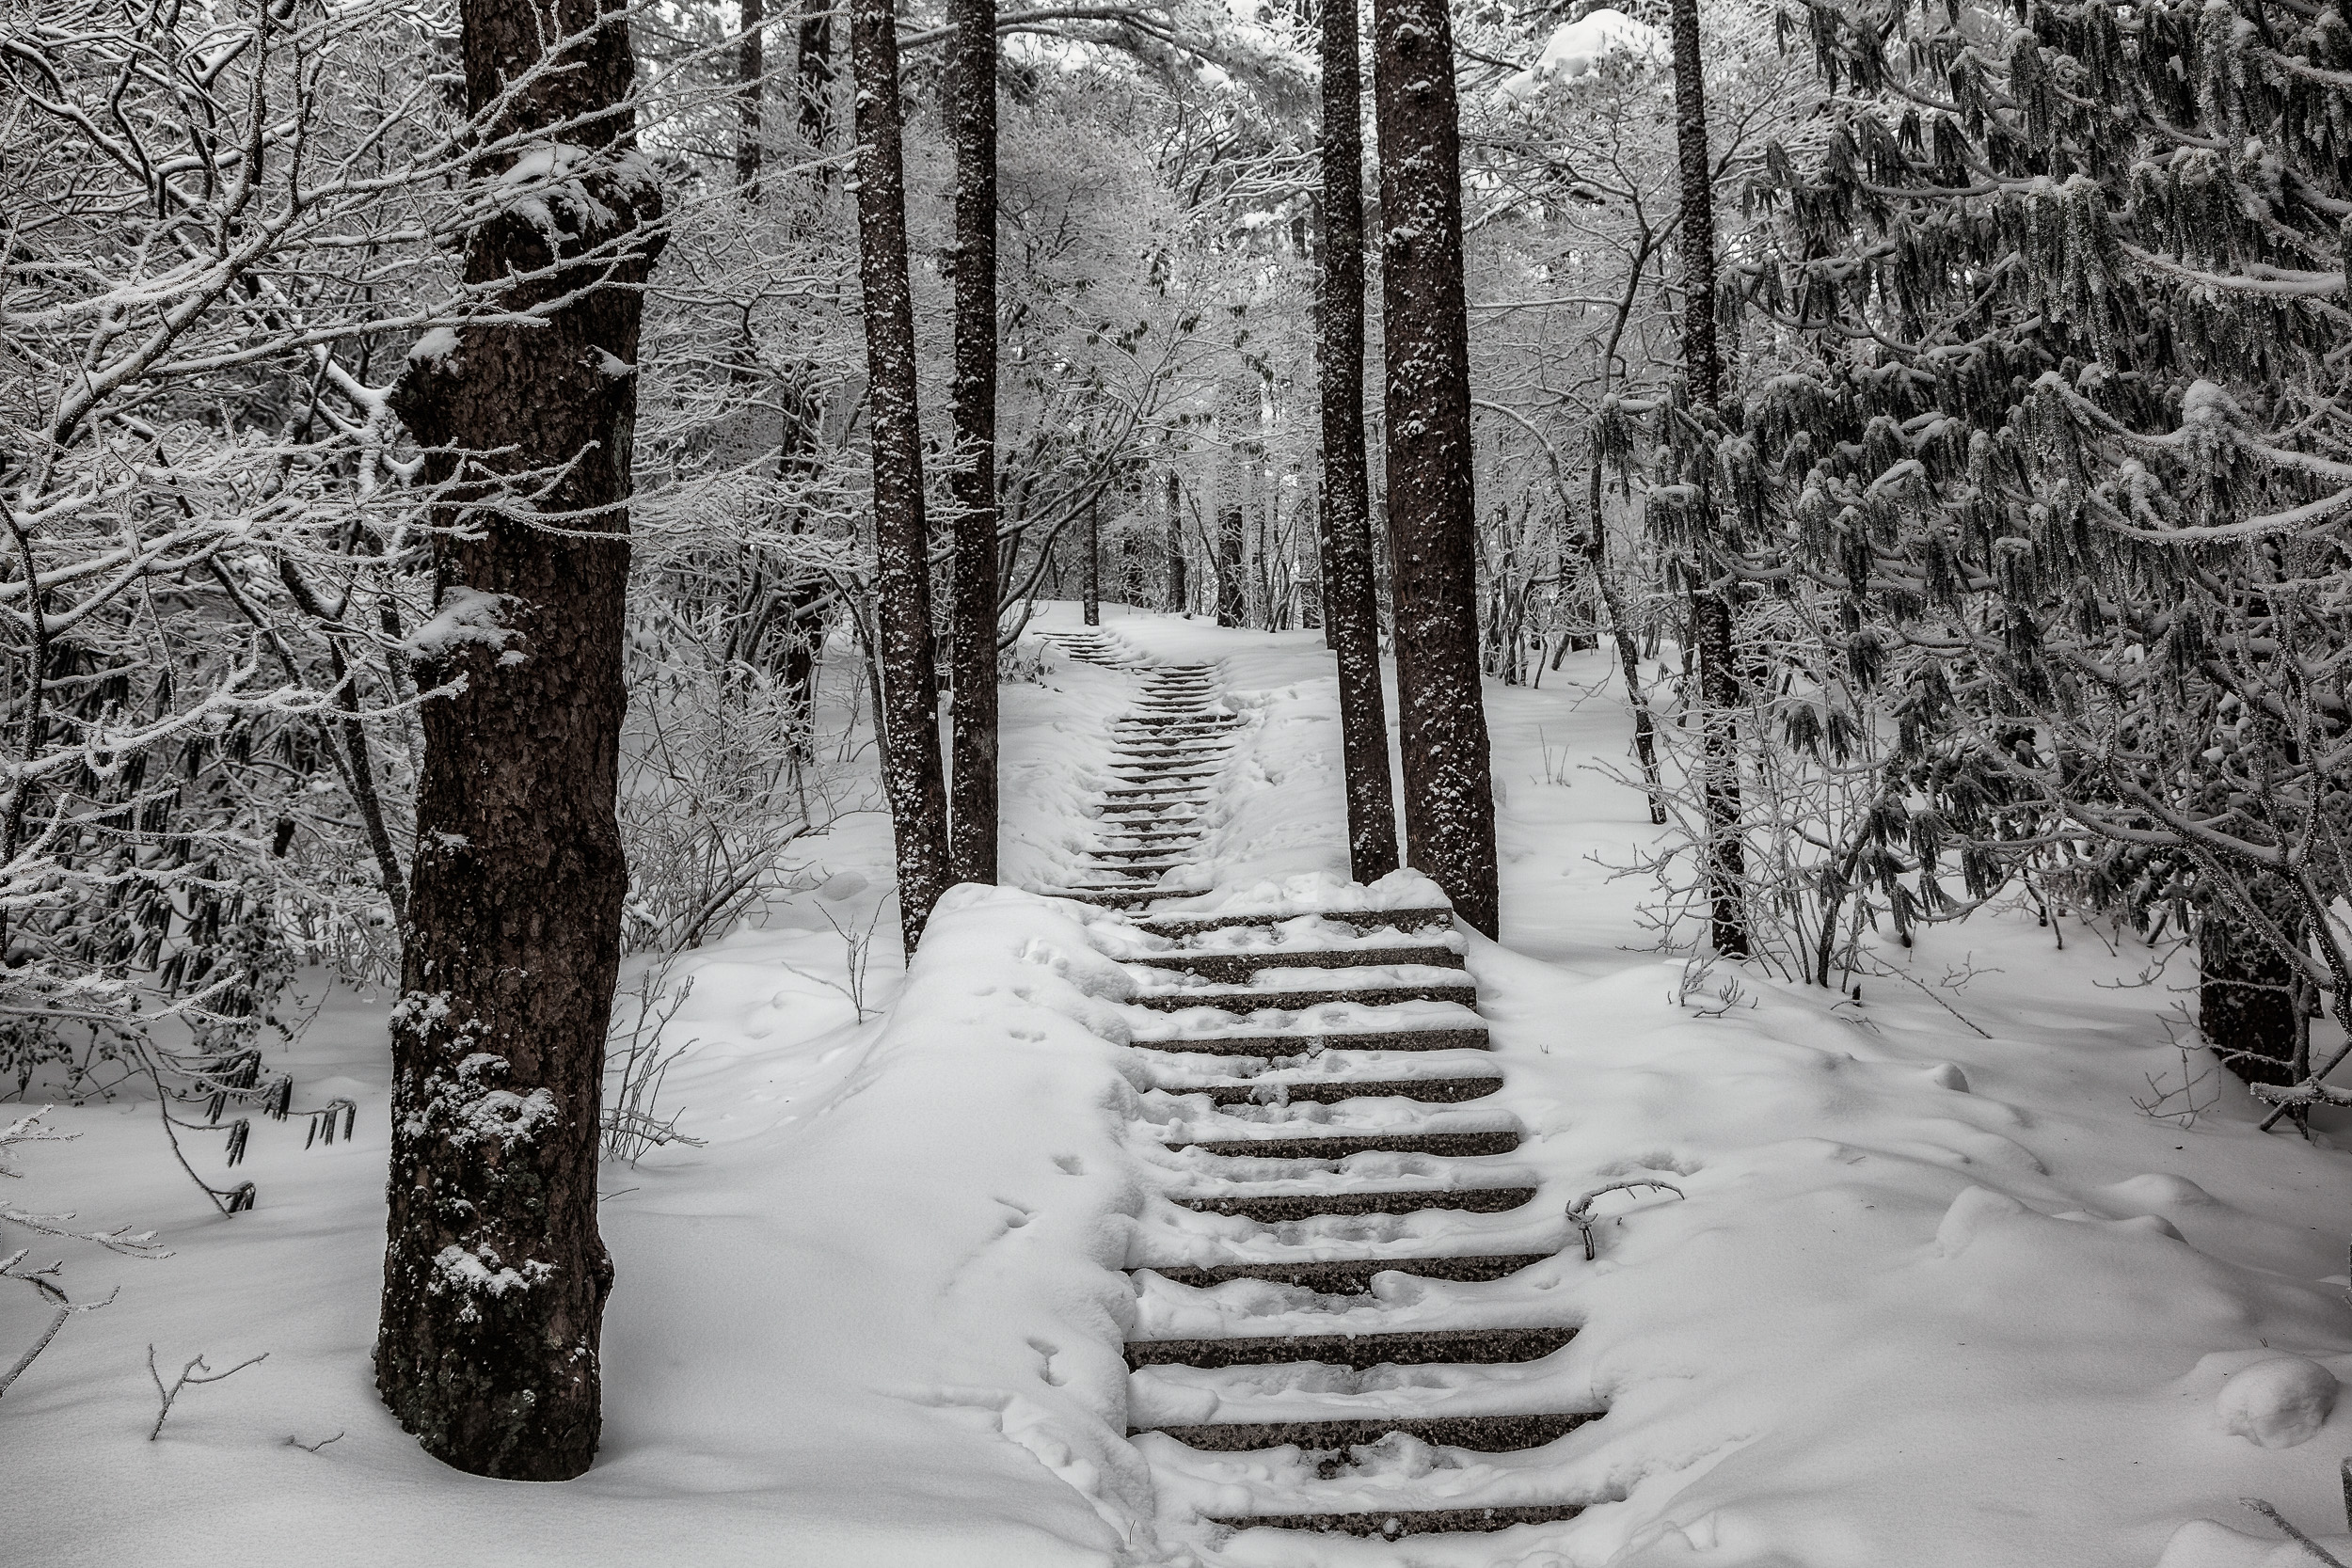 The  path , up through the snow, on  Huangshan  (i.e., Yellow Mountain) in  China .